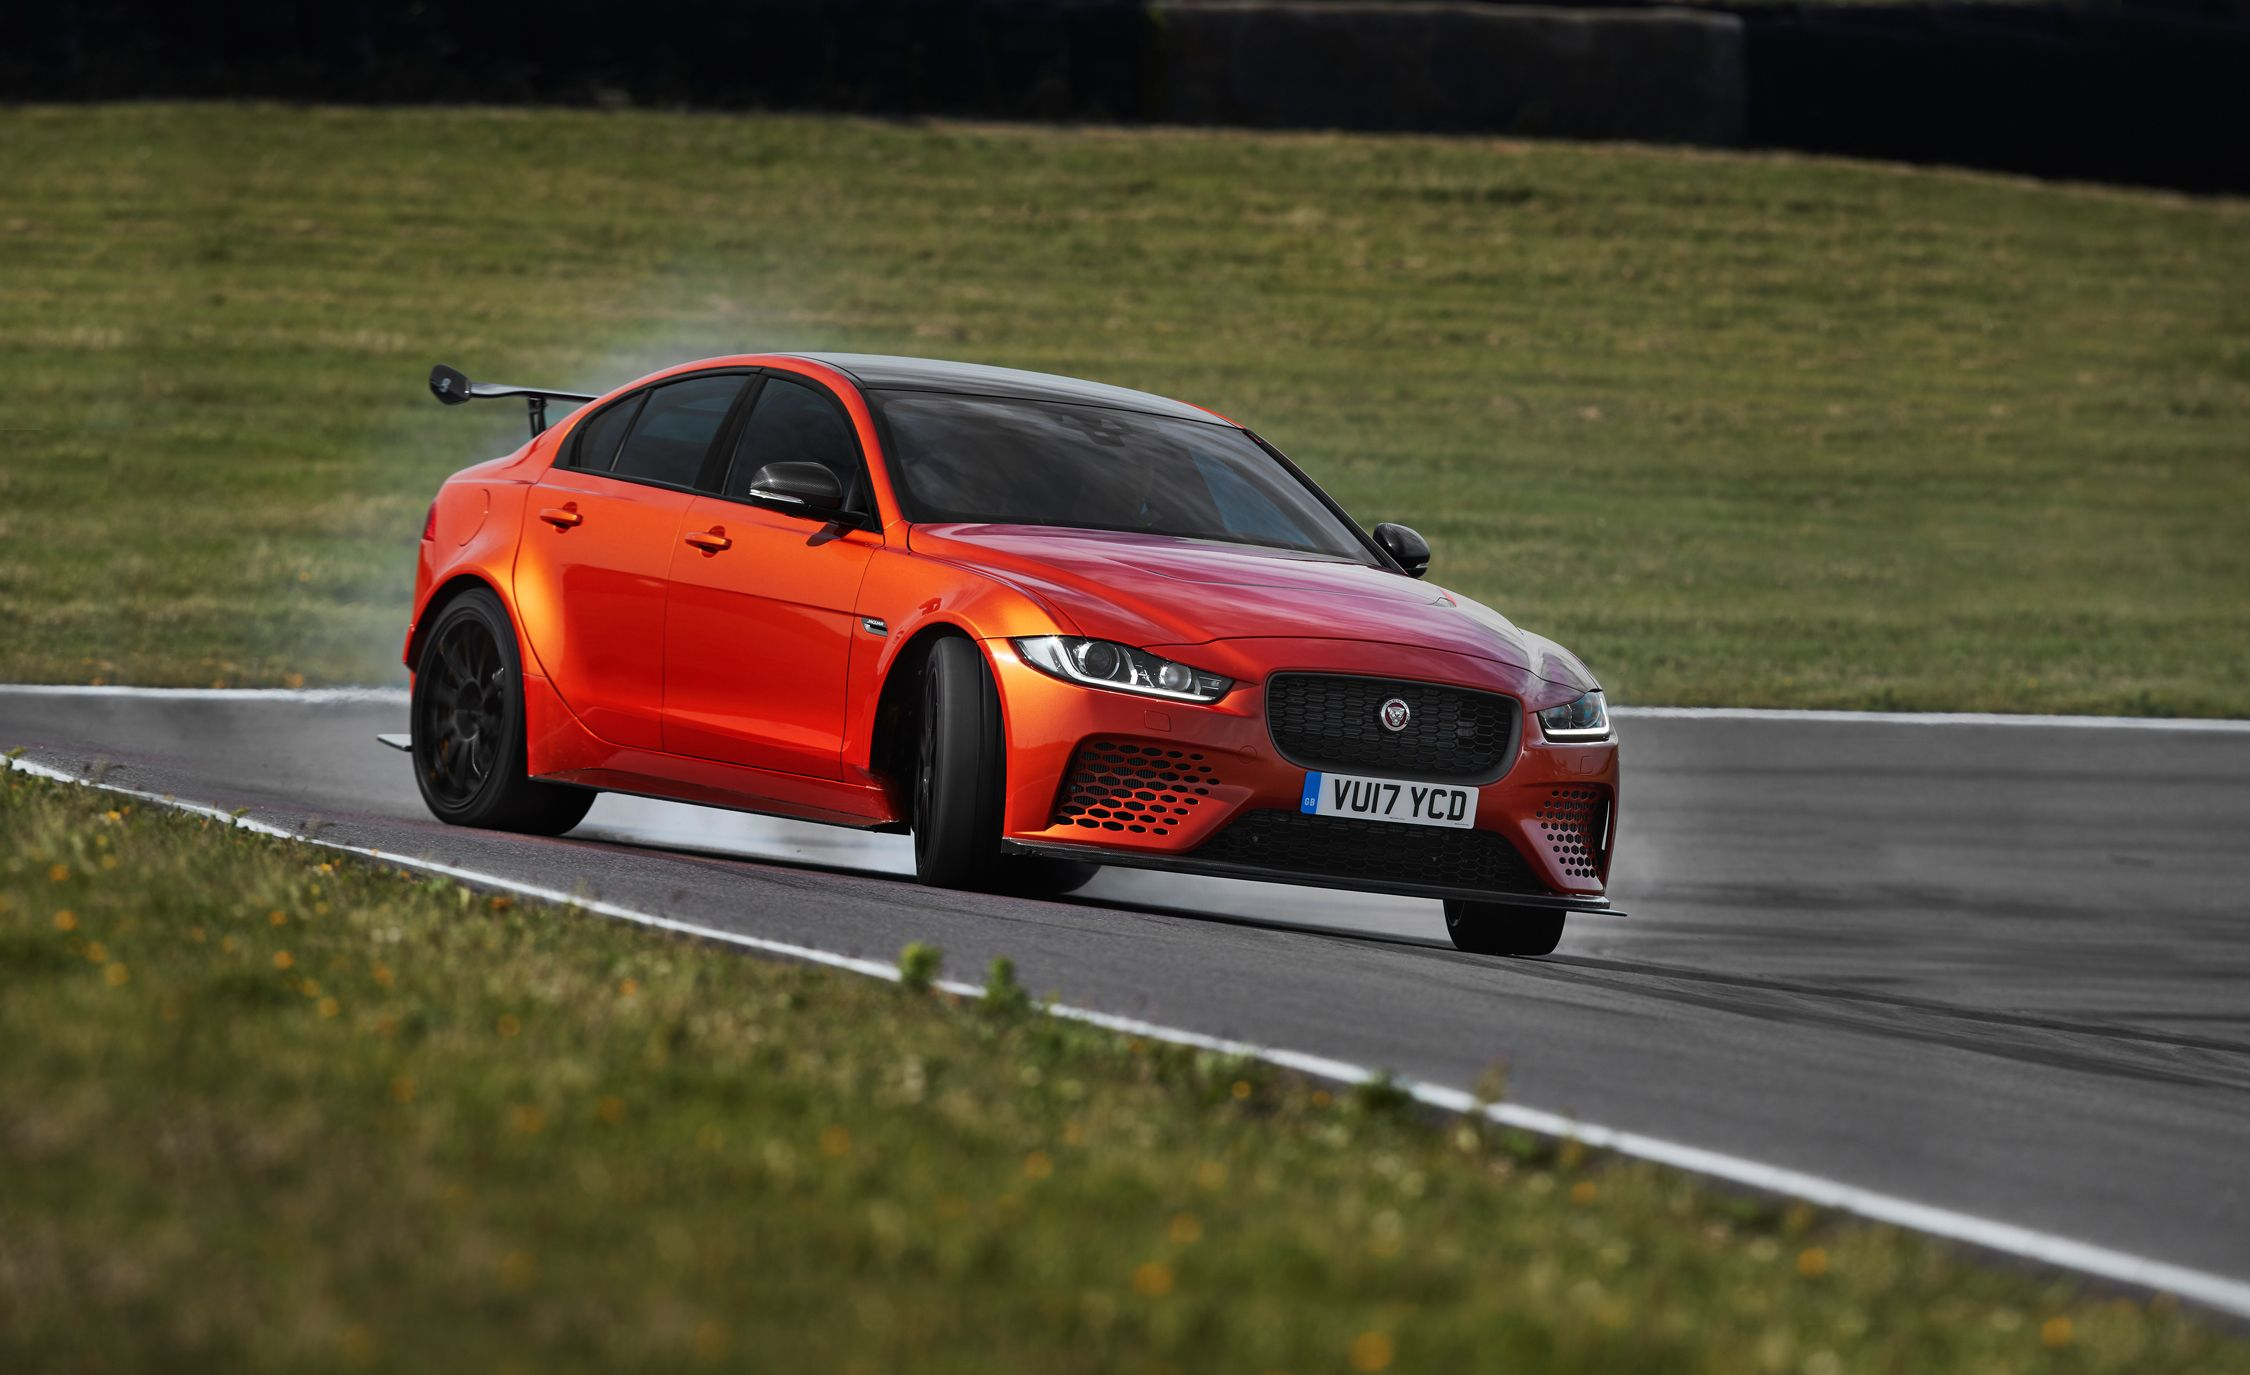 2018 Jaguar XE SV Project 8: Finally, a Fire-Breathing XE